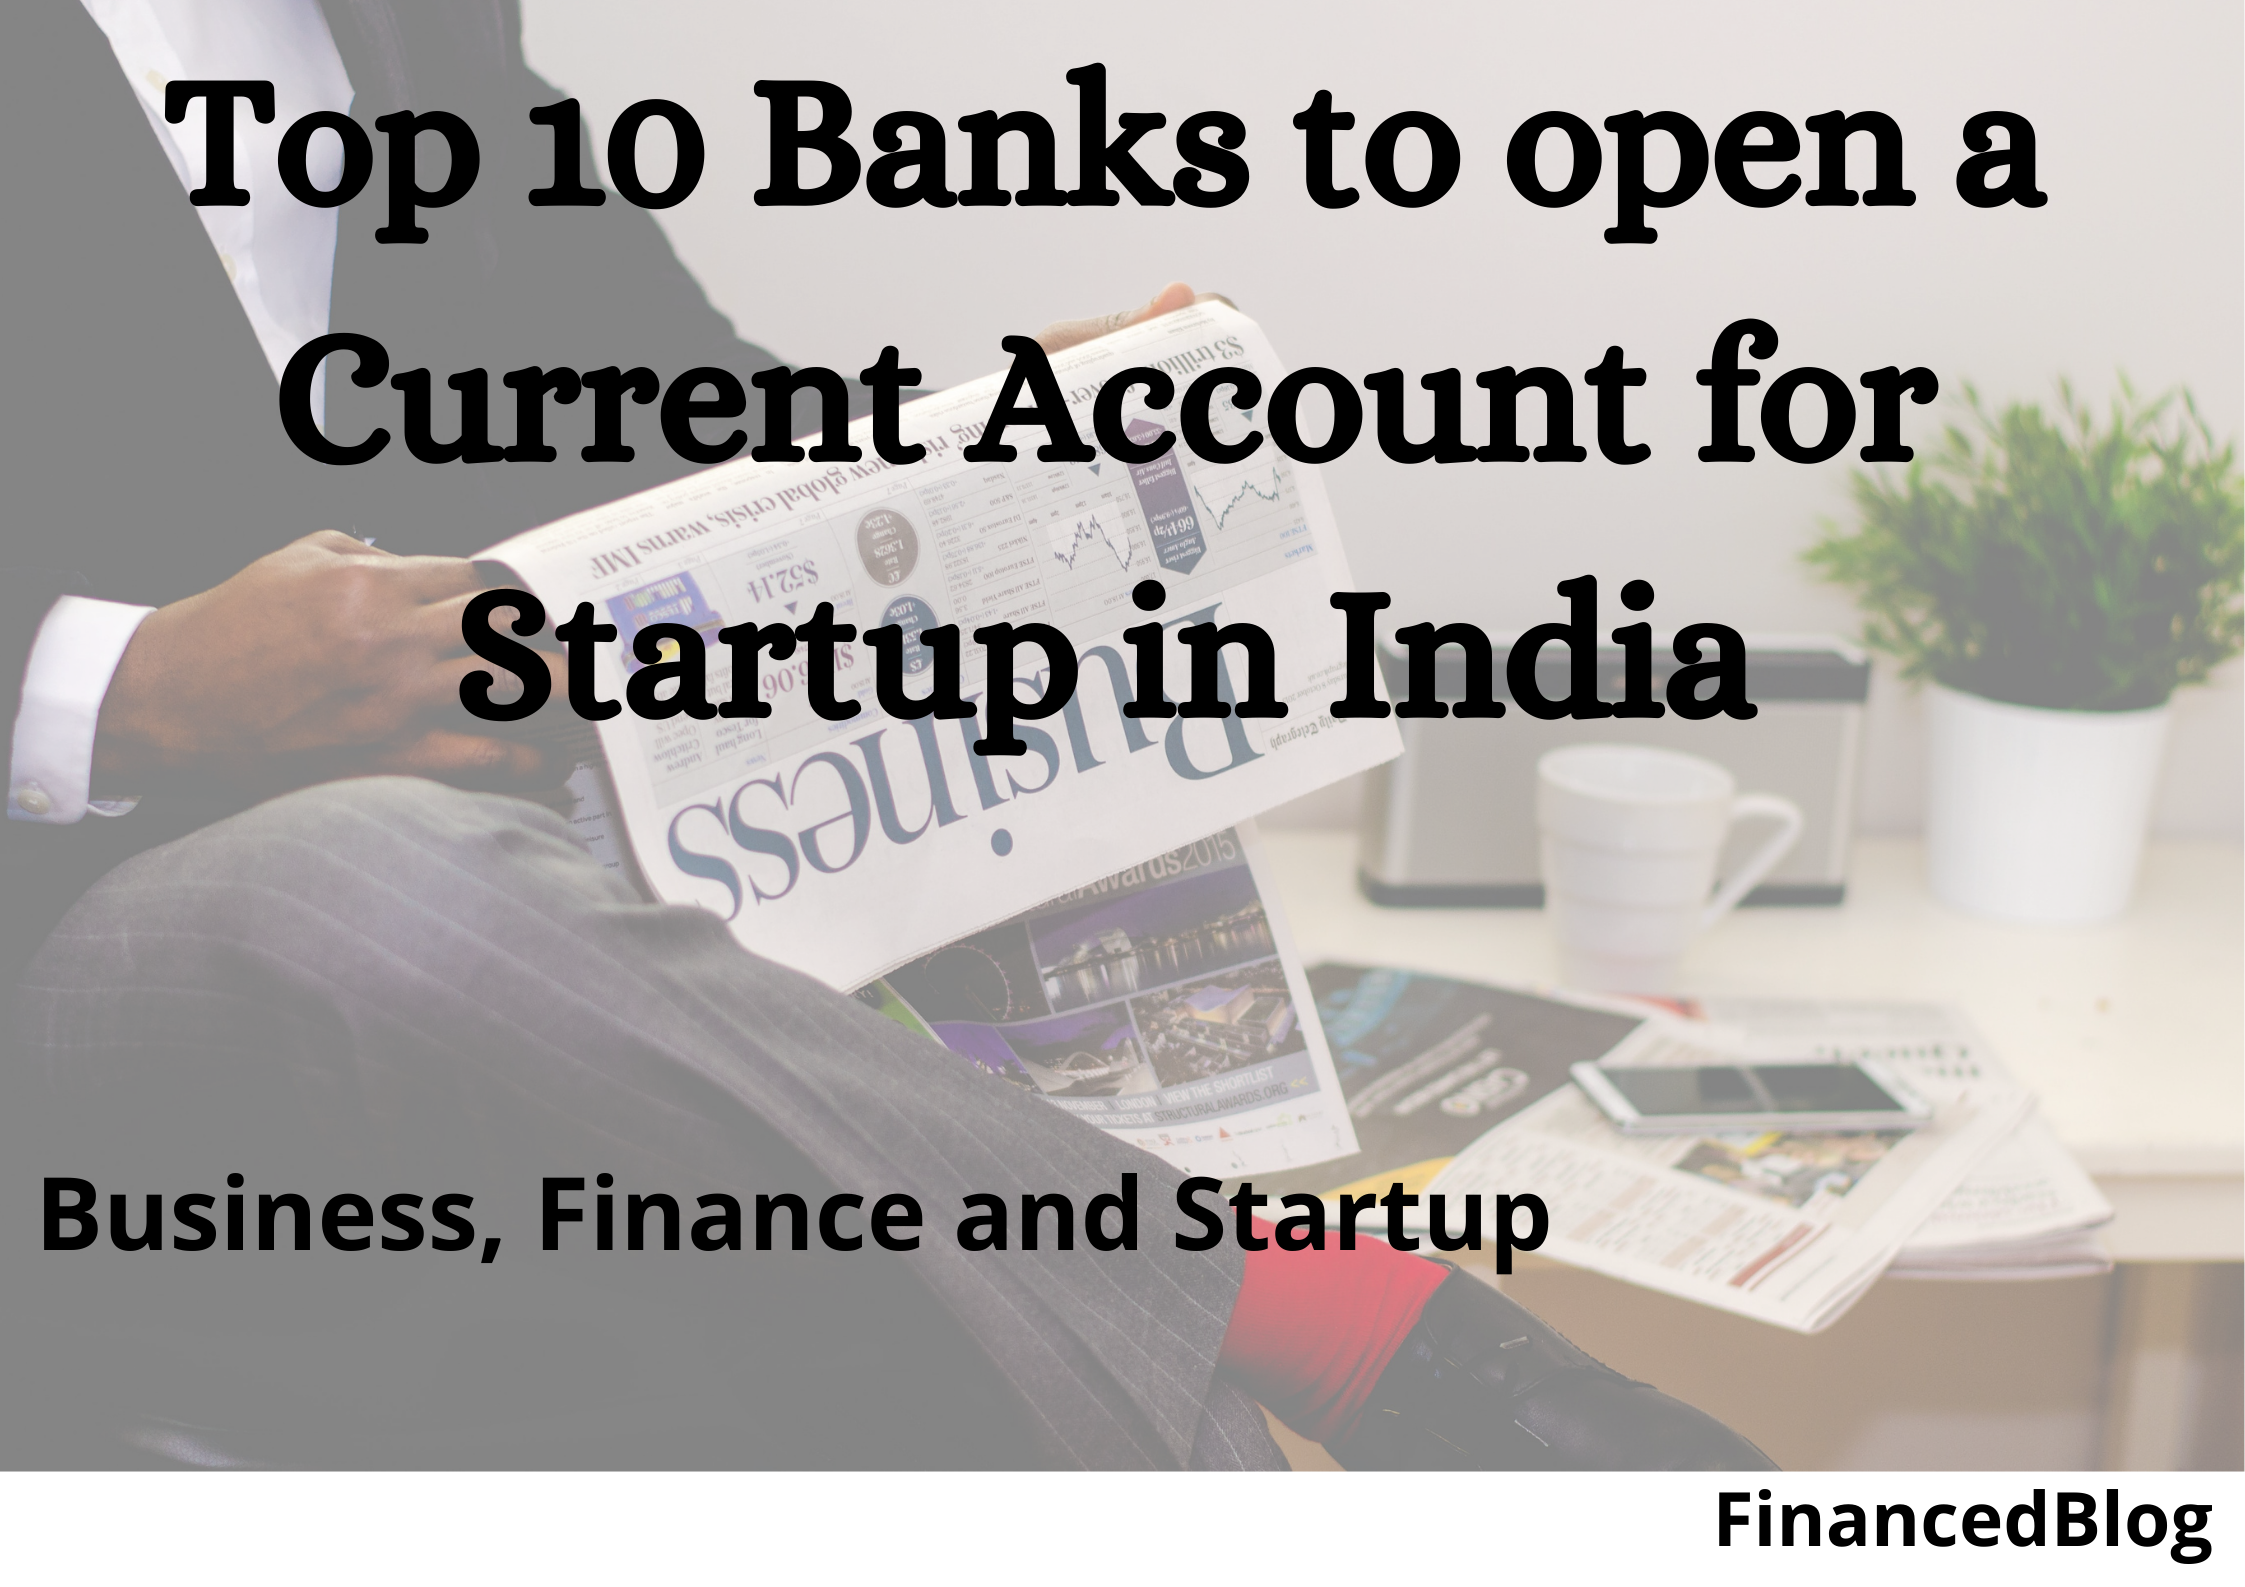 Top 10 Banks to open a Current Account for Startup in India